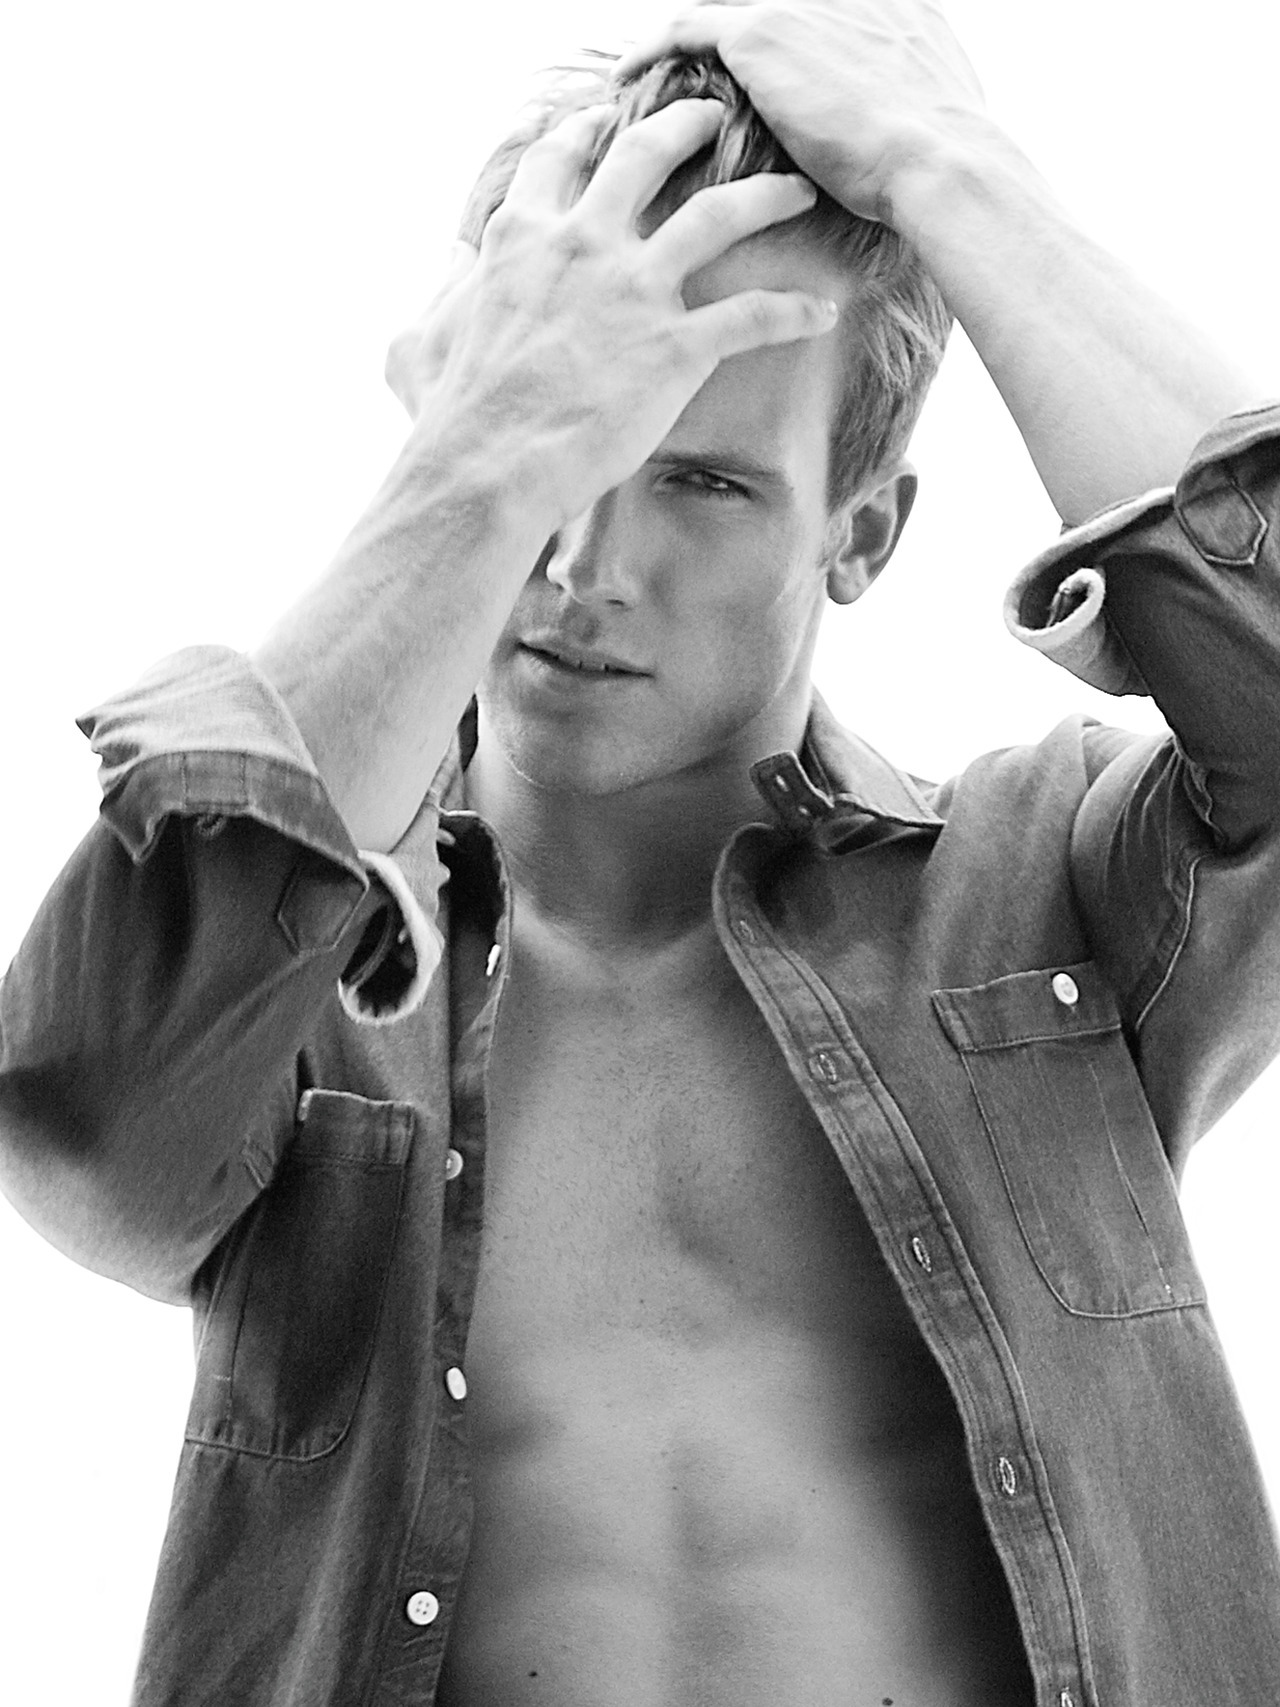 MAXWELL ZAGORSKI | NEW YORK CITY 08.12 | (c) PAUL REITZ | www.paulreitzphoto.com  Maxwell is @ SOUL